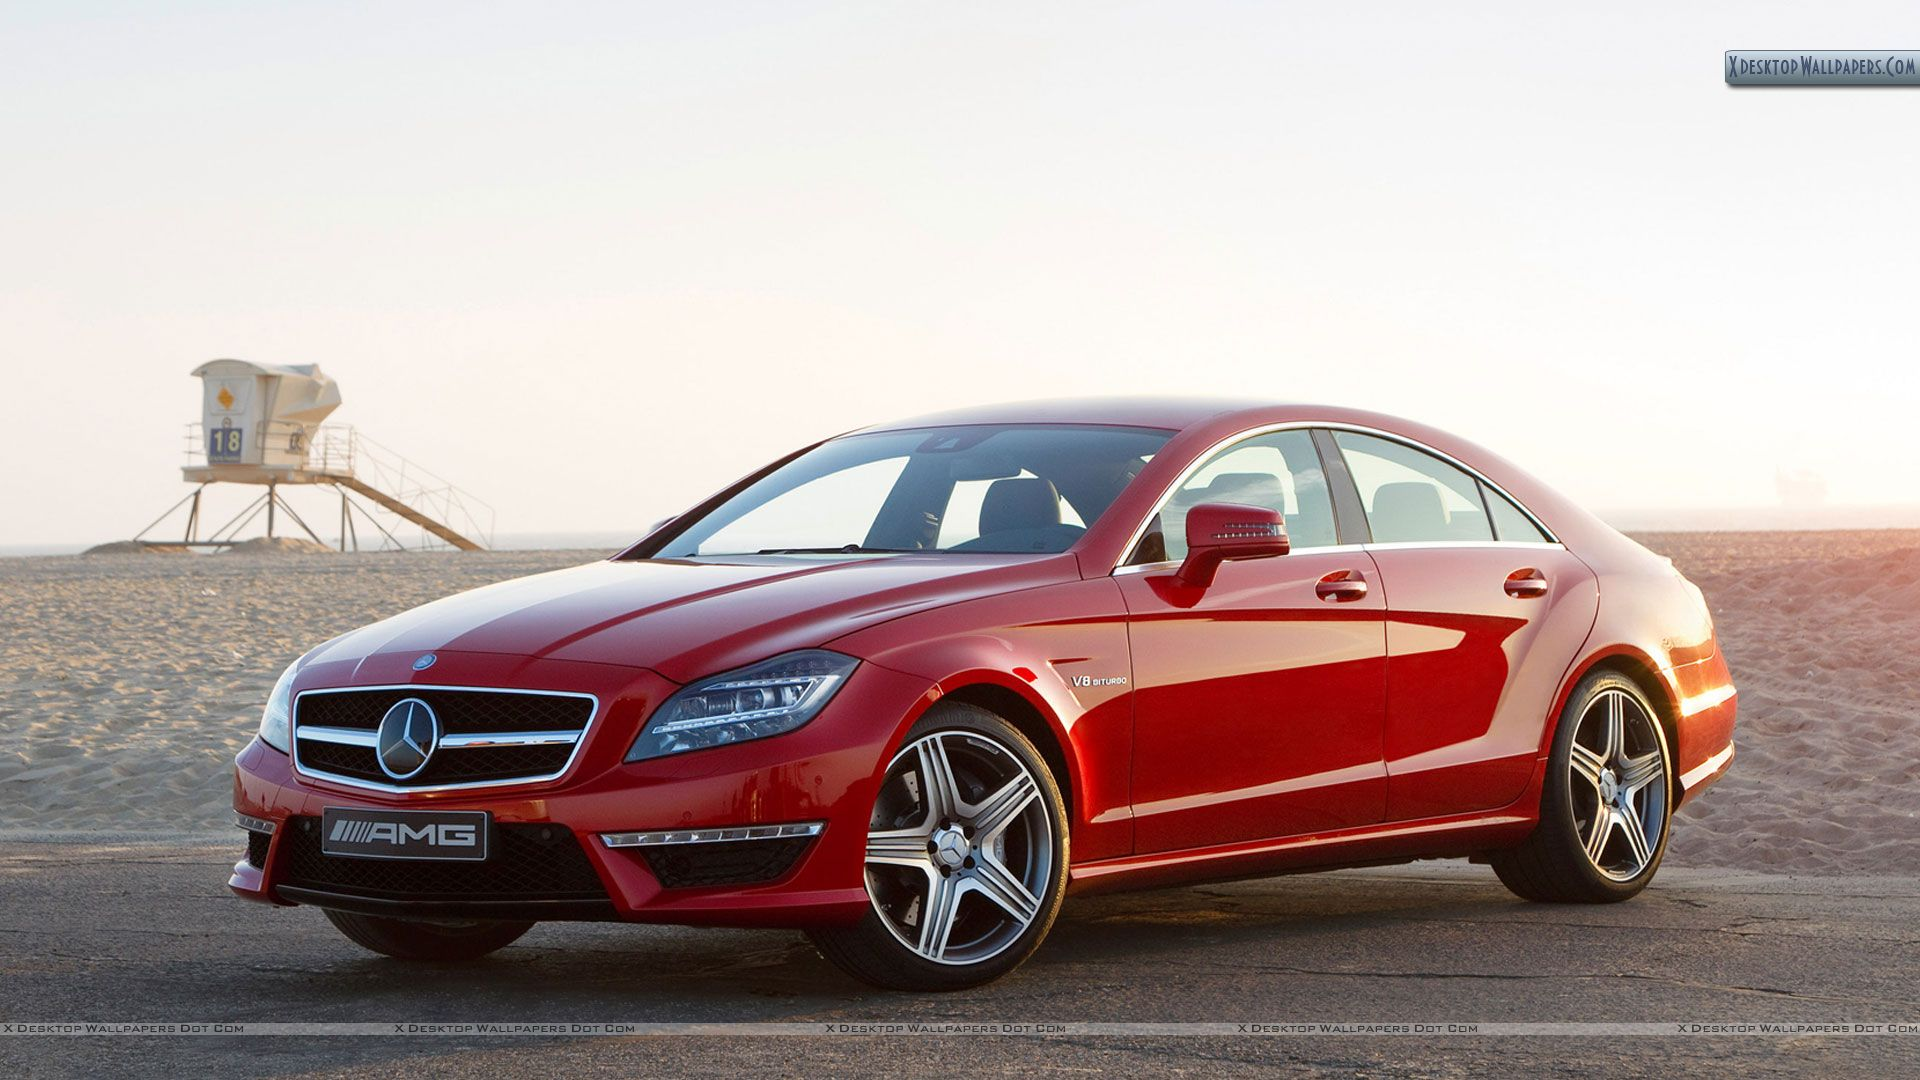 2012 mercedes benz cls63 amg red color wallpaper